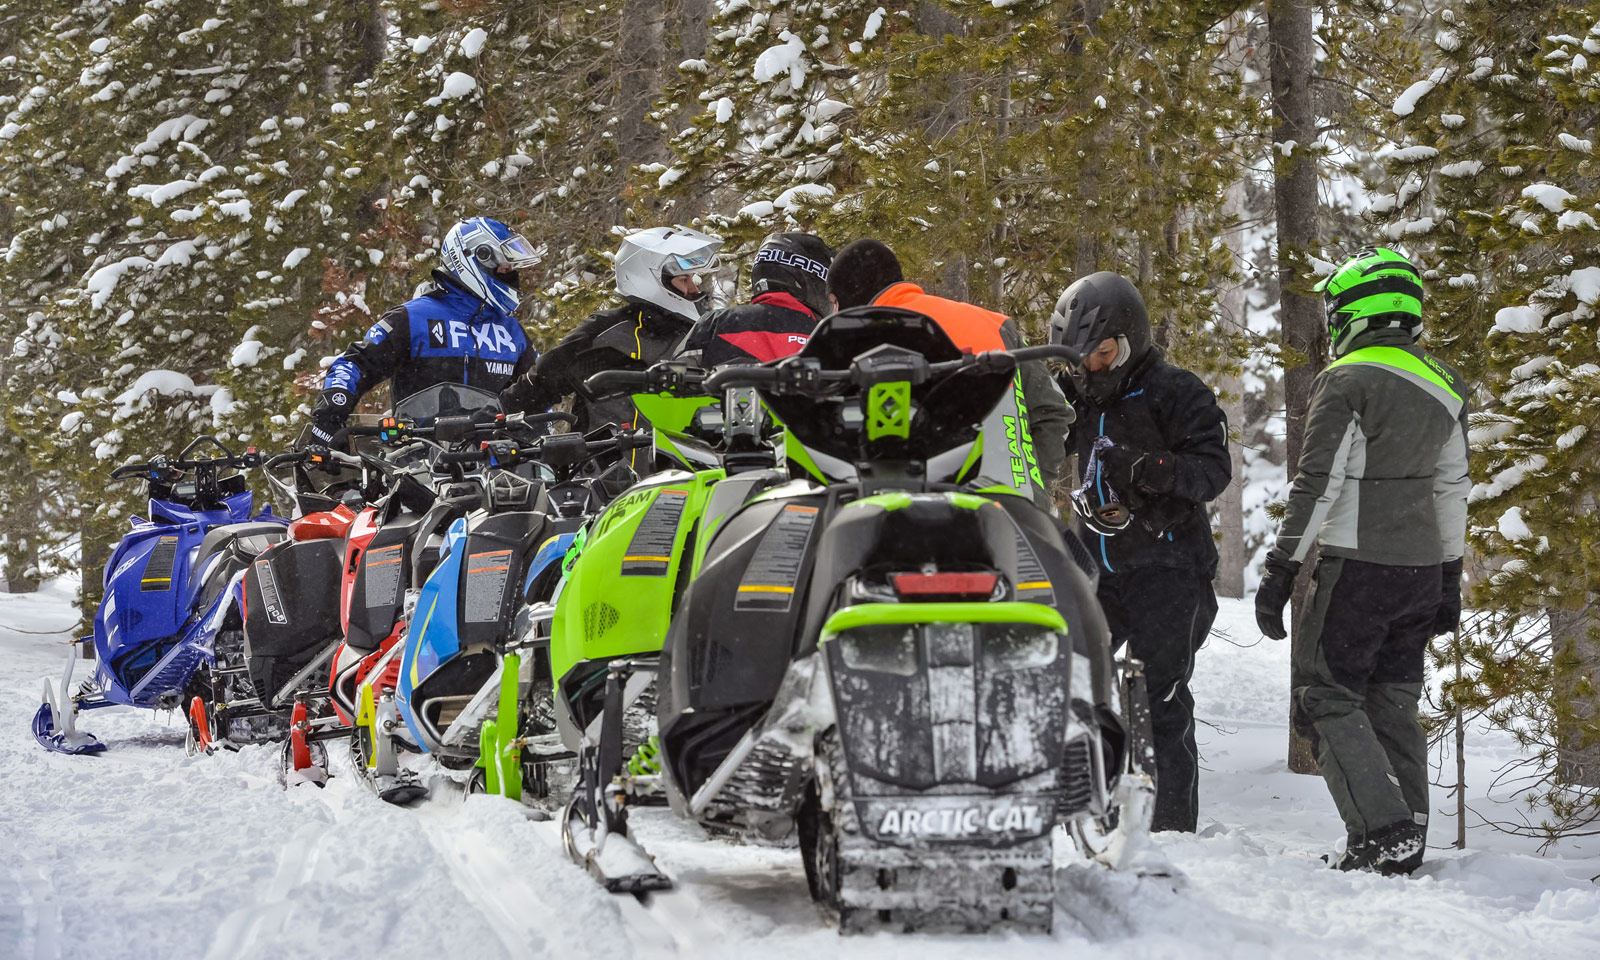 Line of snowmobiles showing their tracks